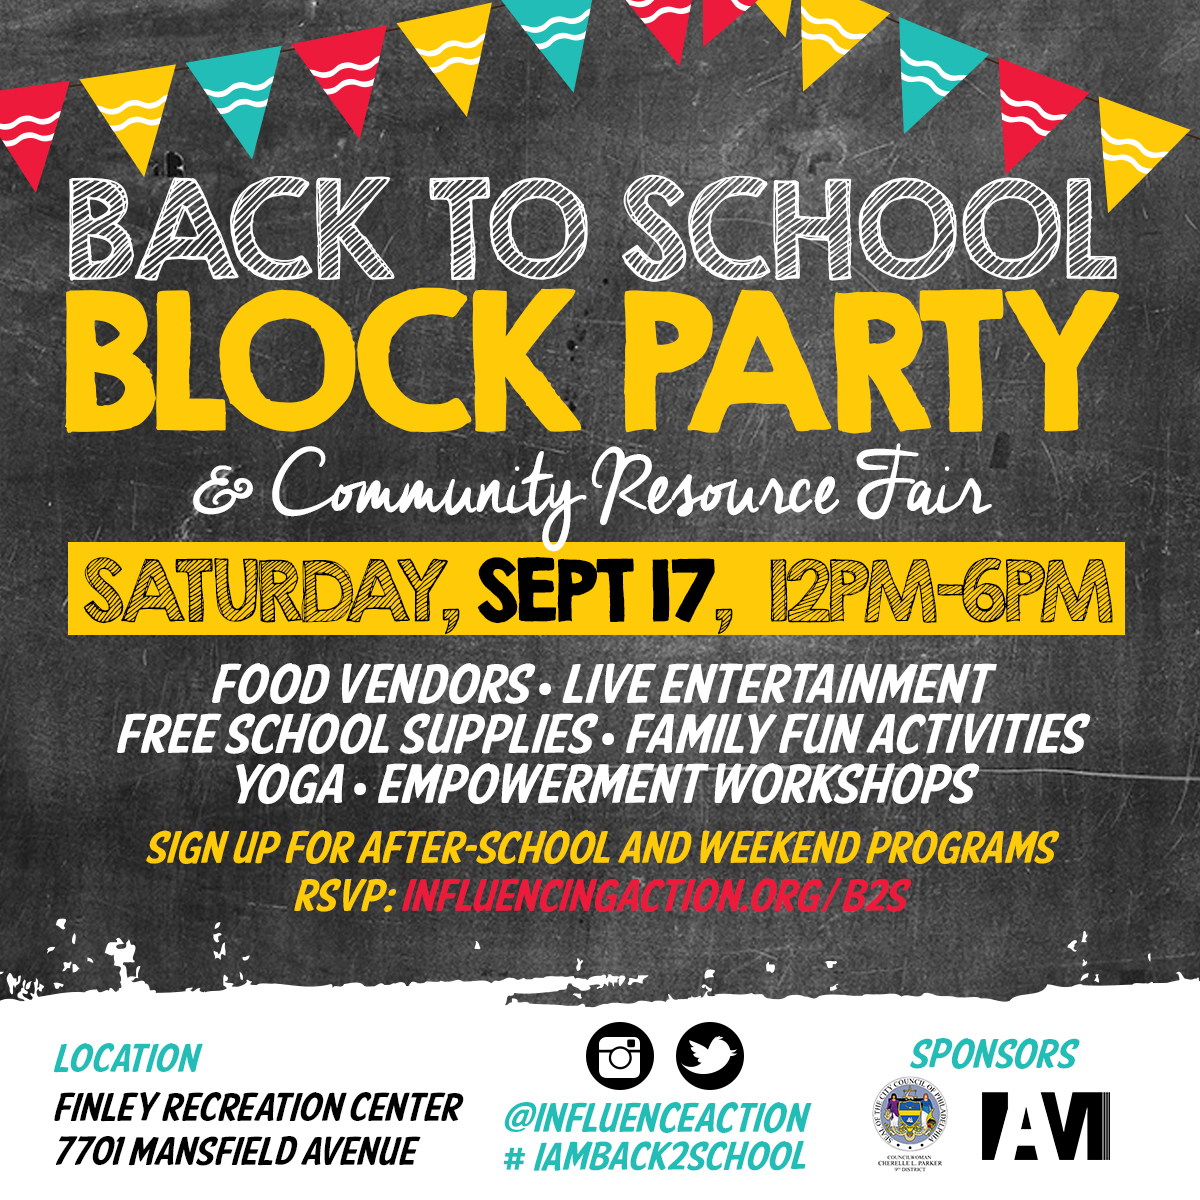 meet us uptown on 17th iam back to school block party iam in partnership the office of councilw cherelle parker and the finley recreation center advisory board is hosting its 5th annual back to school